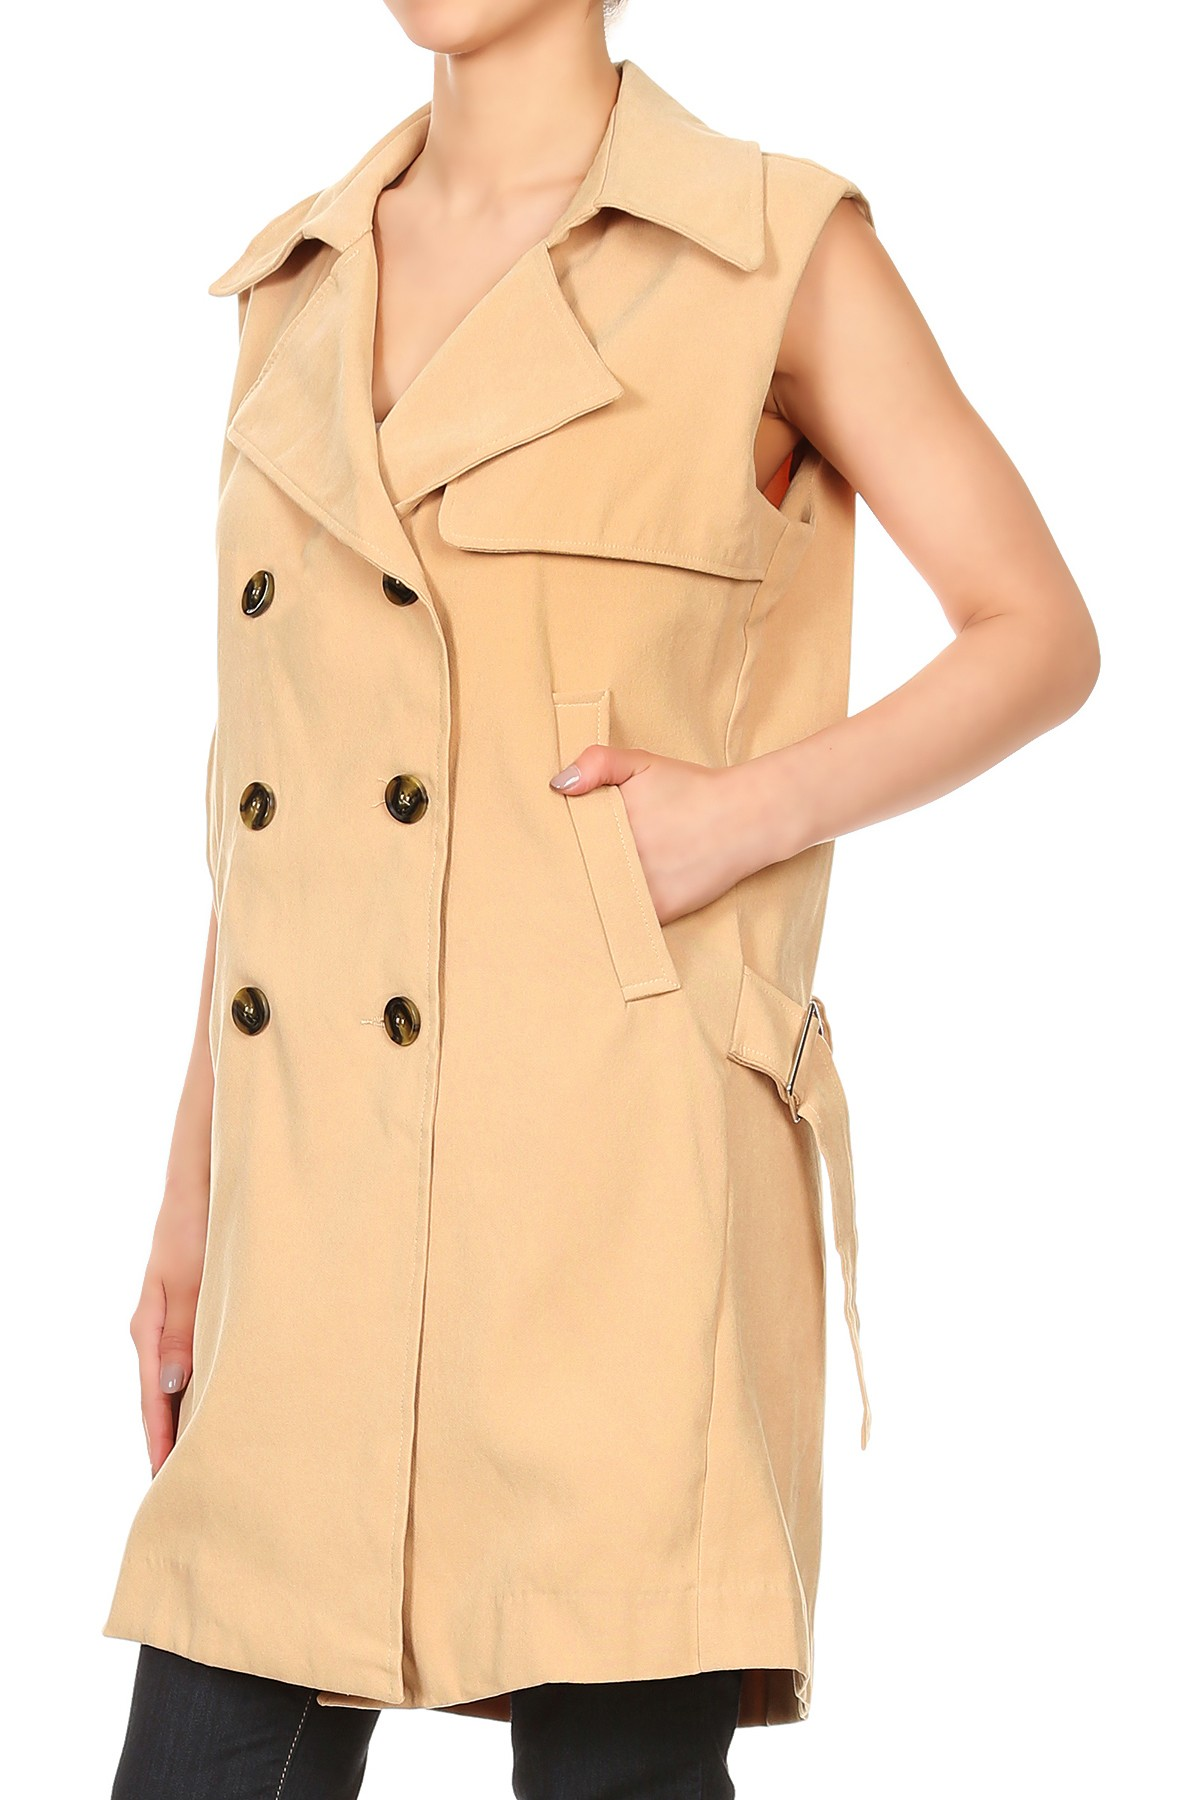 Beige open front vest duster outfits investment consultant rfp 2021 movie